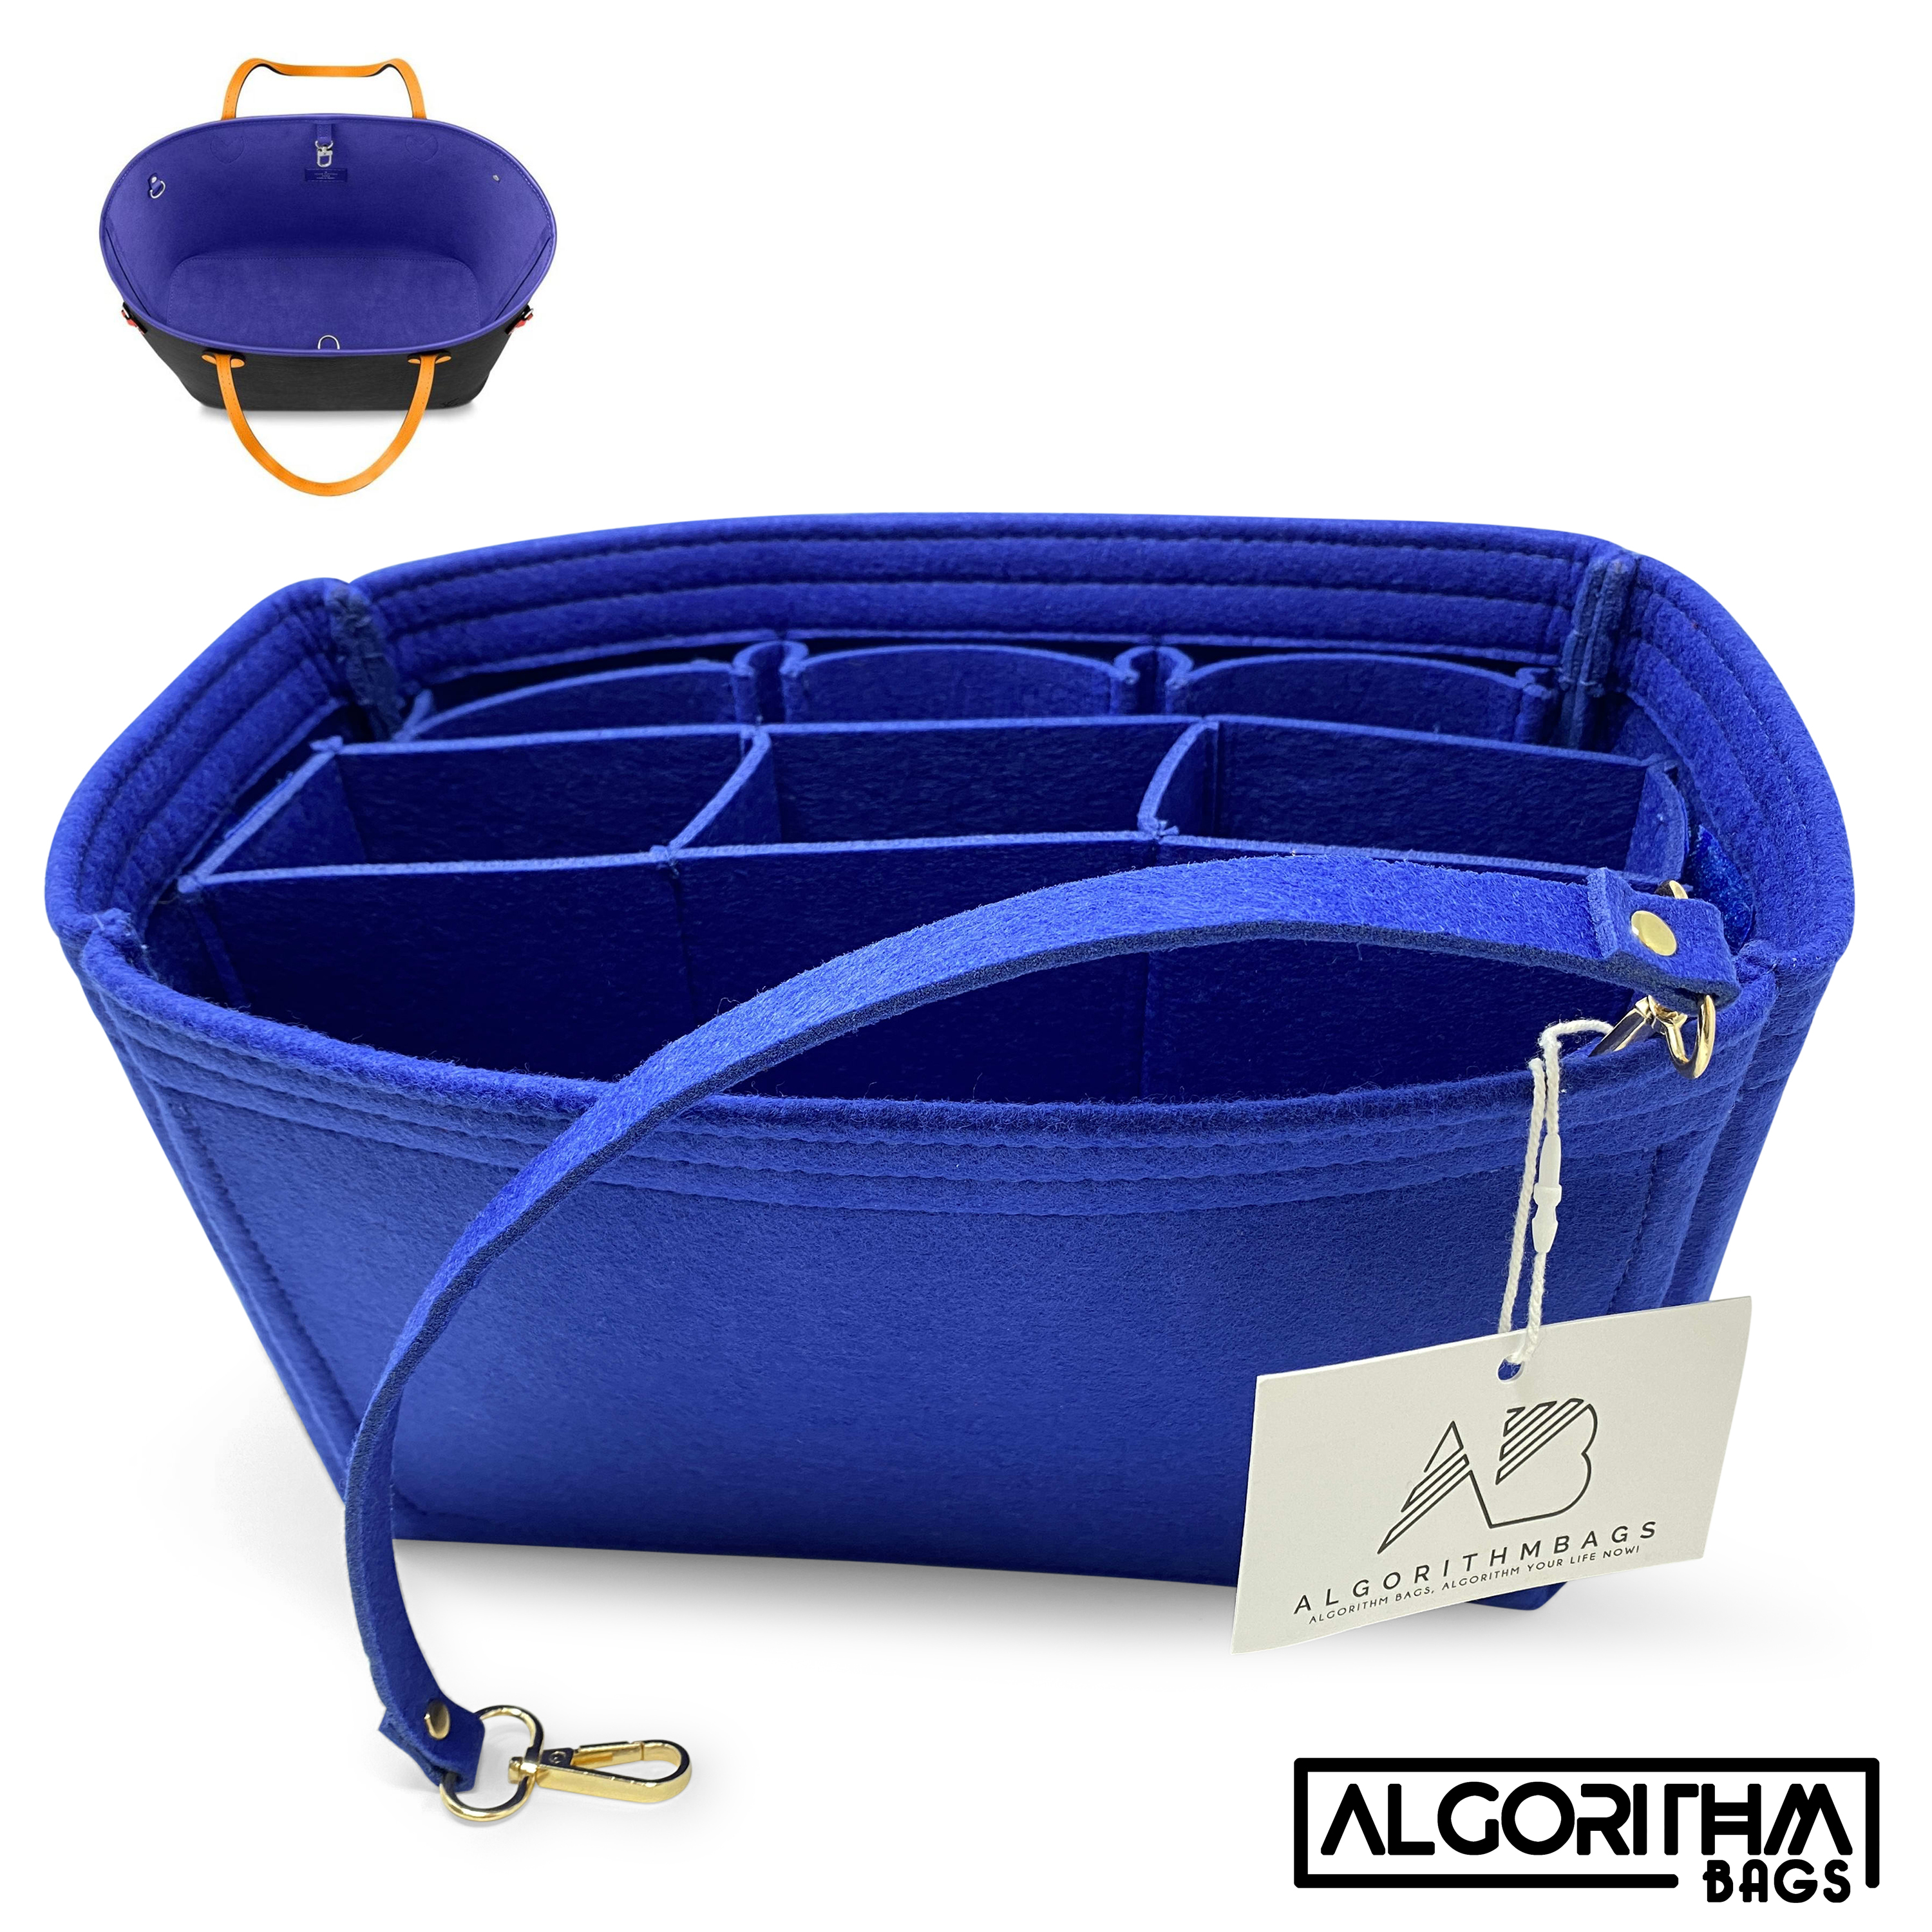 AlgorithmBags® Neverfull MM Organizer LV Purse Insert, Safran Blue